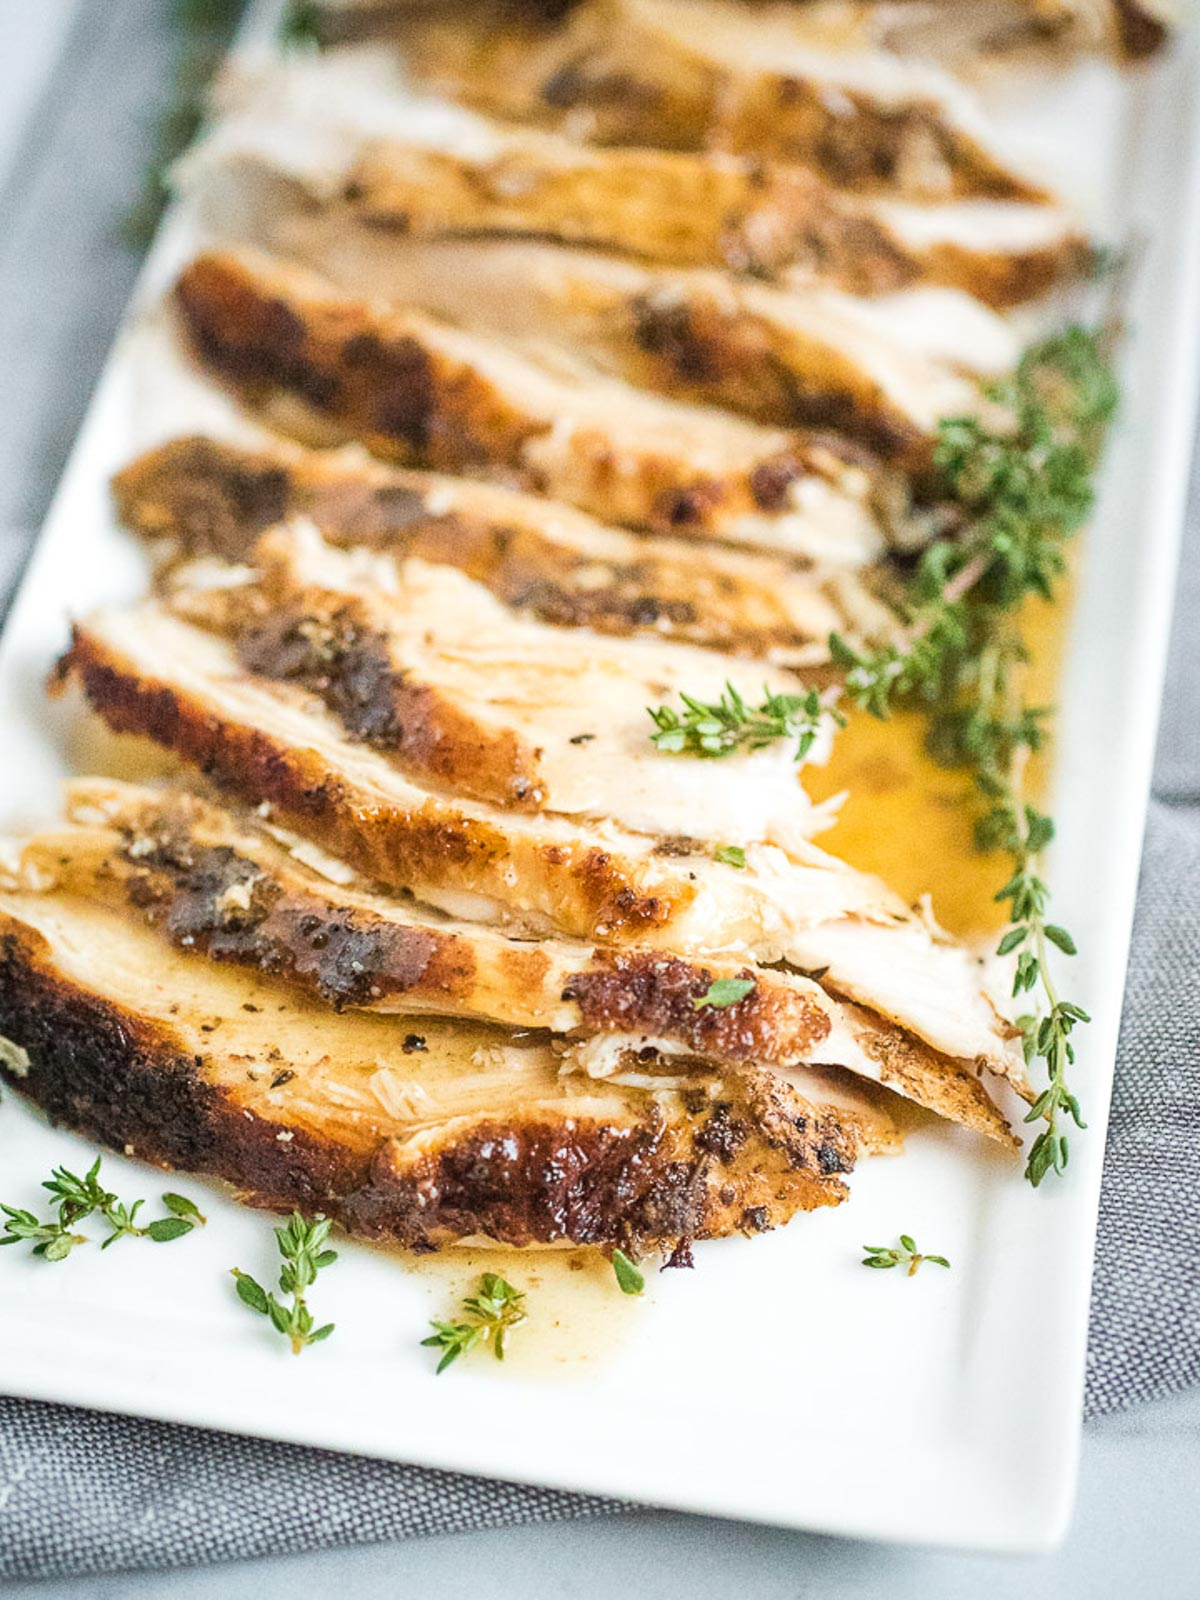 sliced turkey breast on plate with gravy